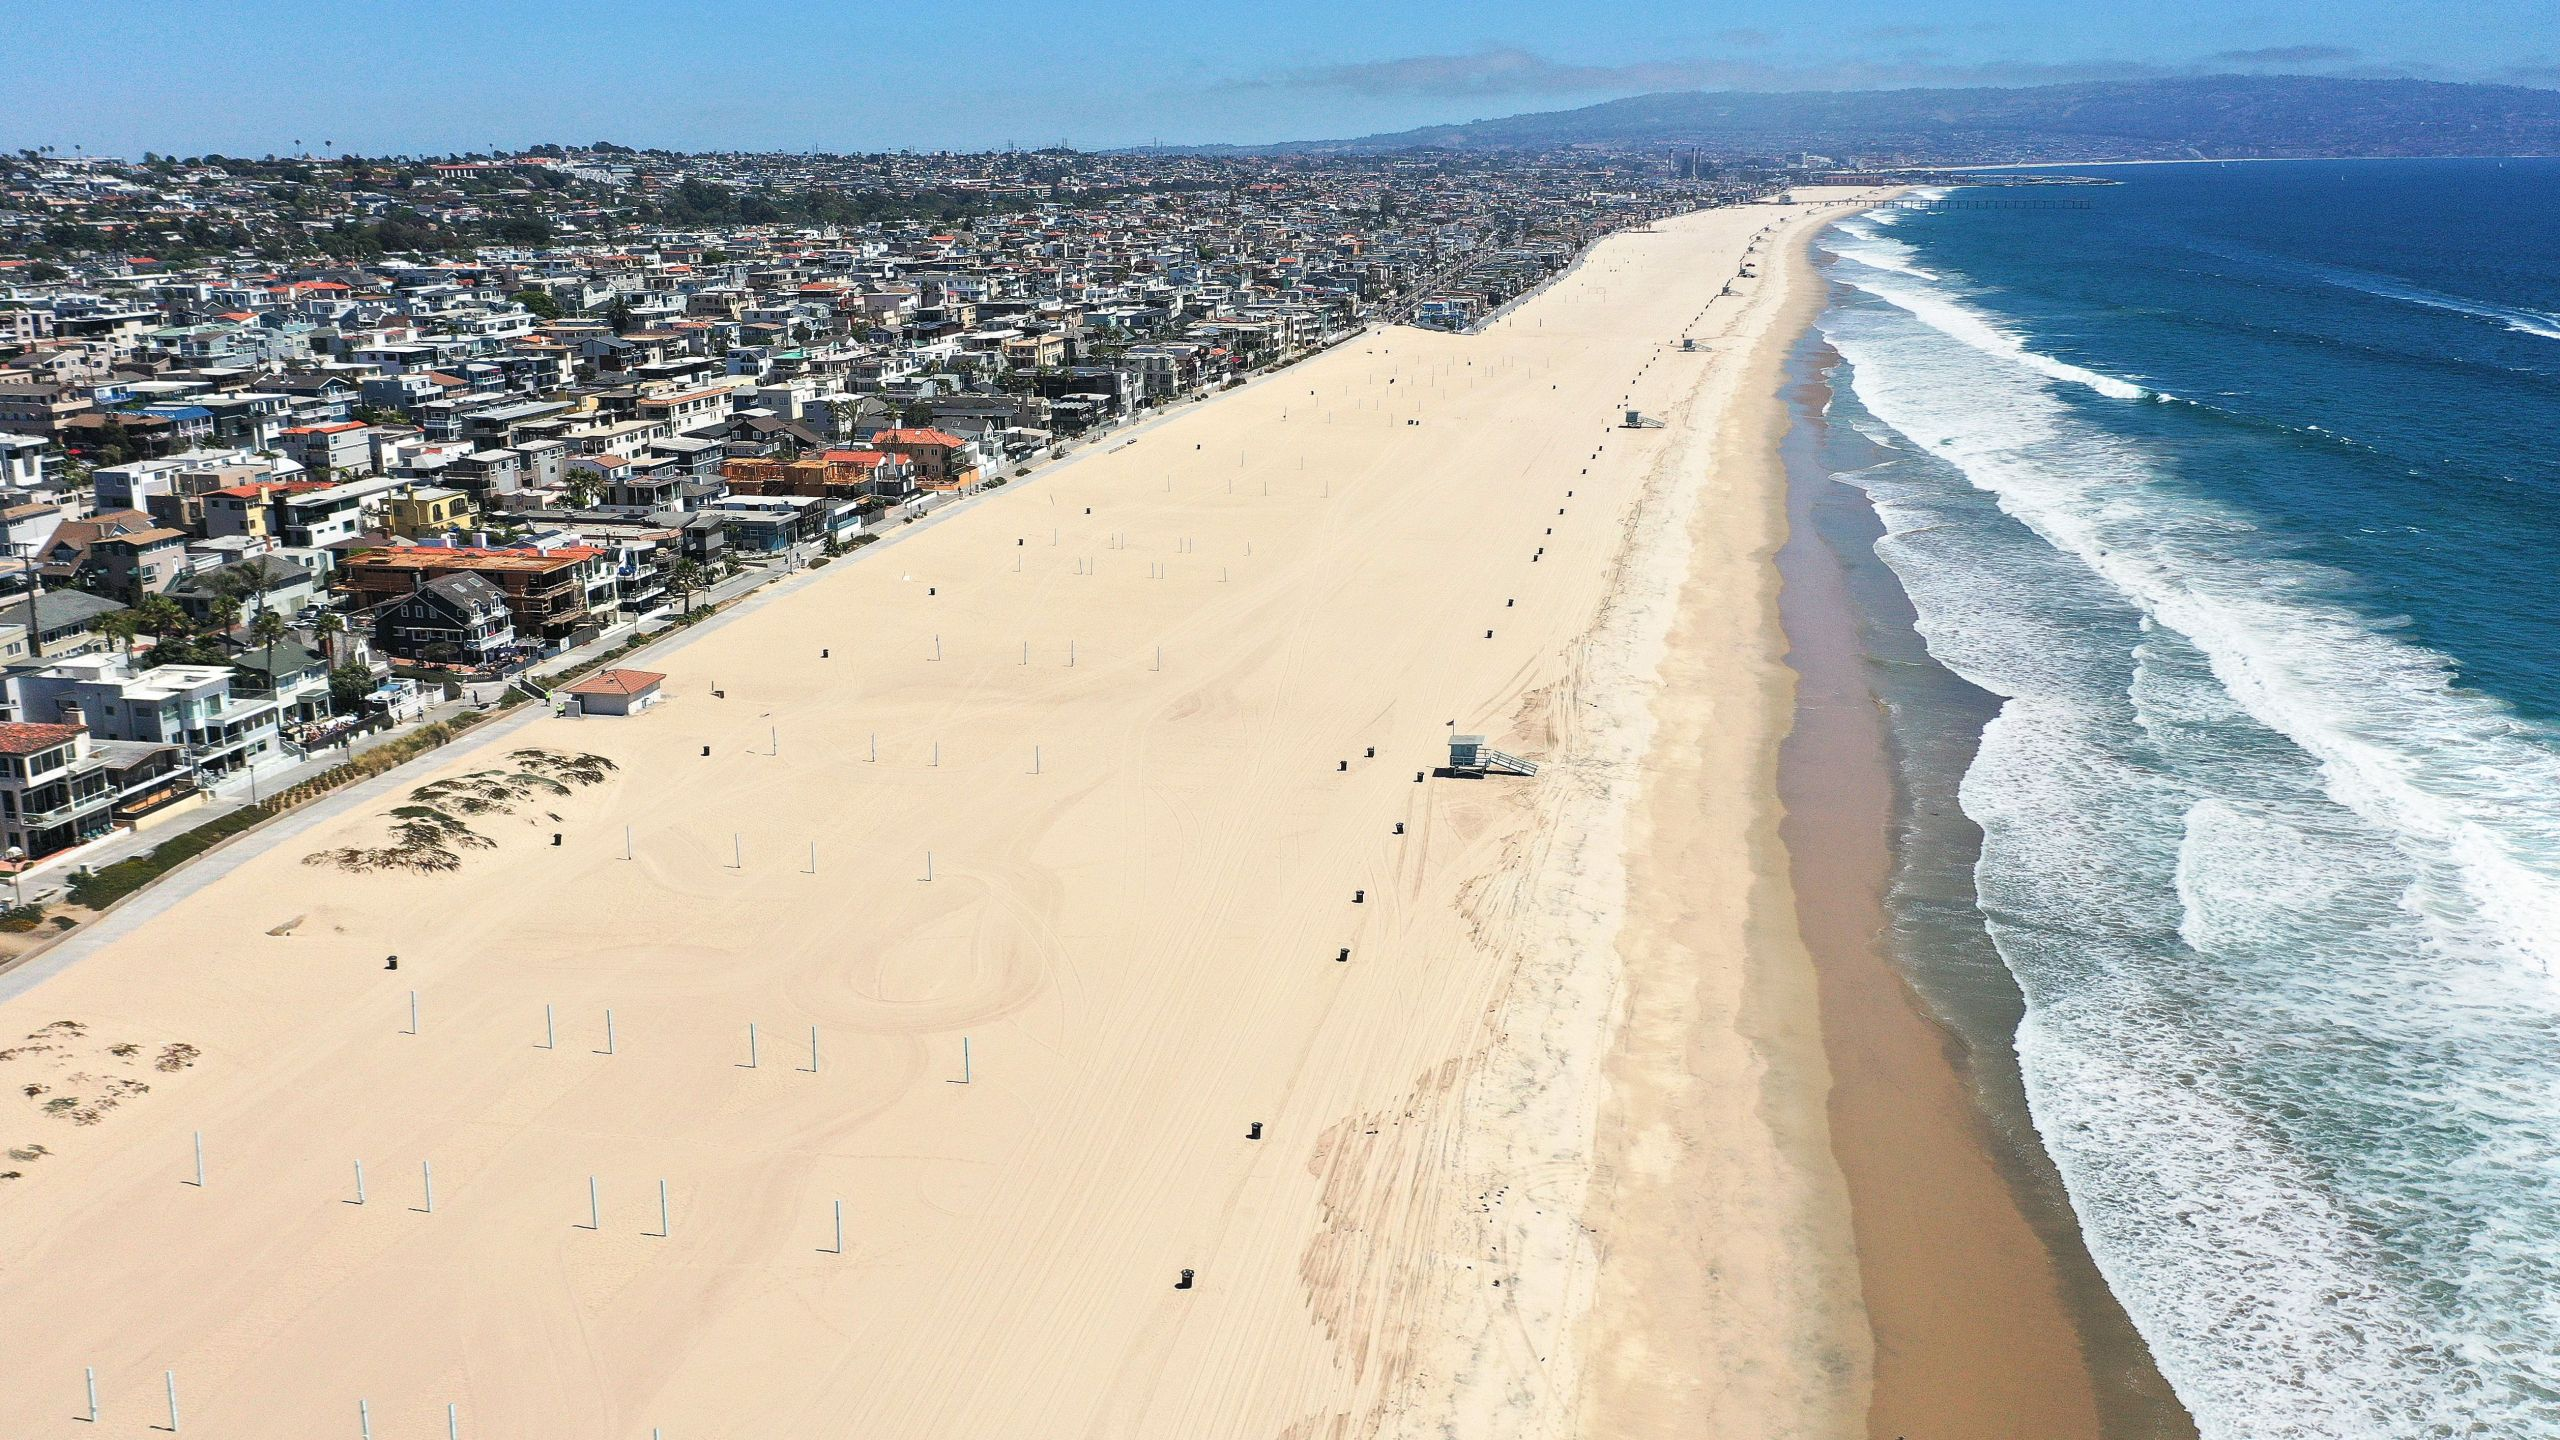 An aerial view of the closed and deserted beach on Independence Day afternoon amid the COVID-19 pandemic on July 4, 2020 in Manhattan Beach, California. (Mario Tama/Getty Images)